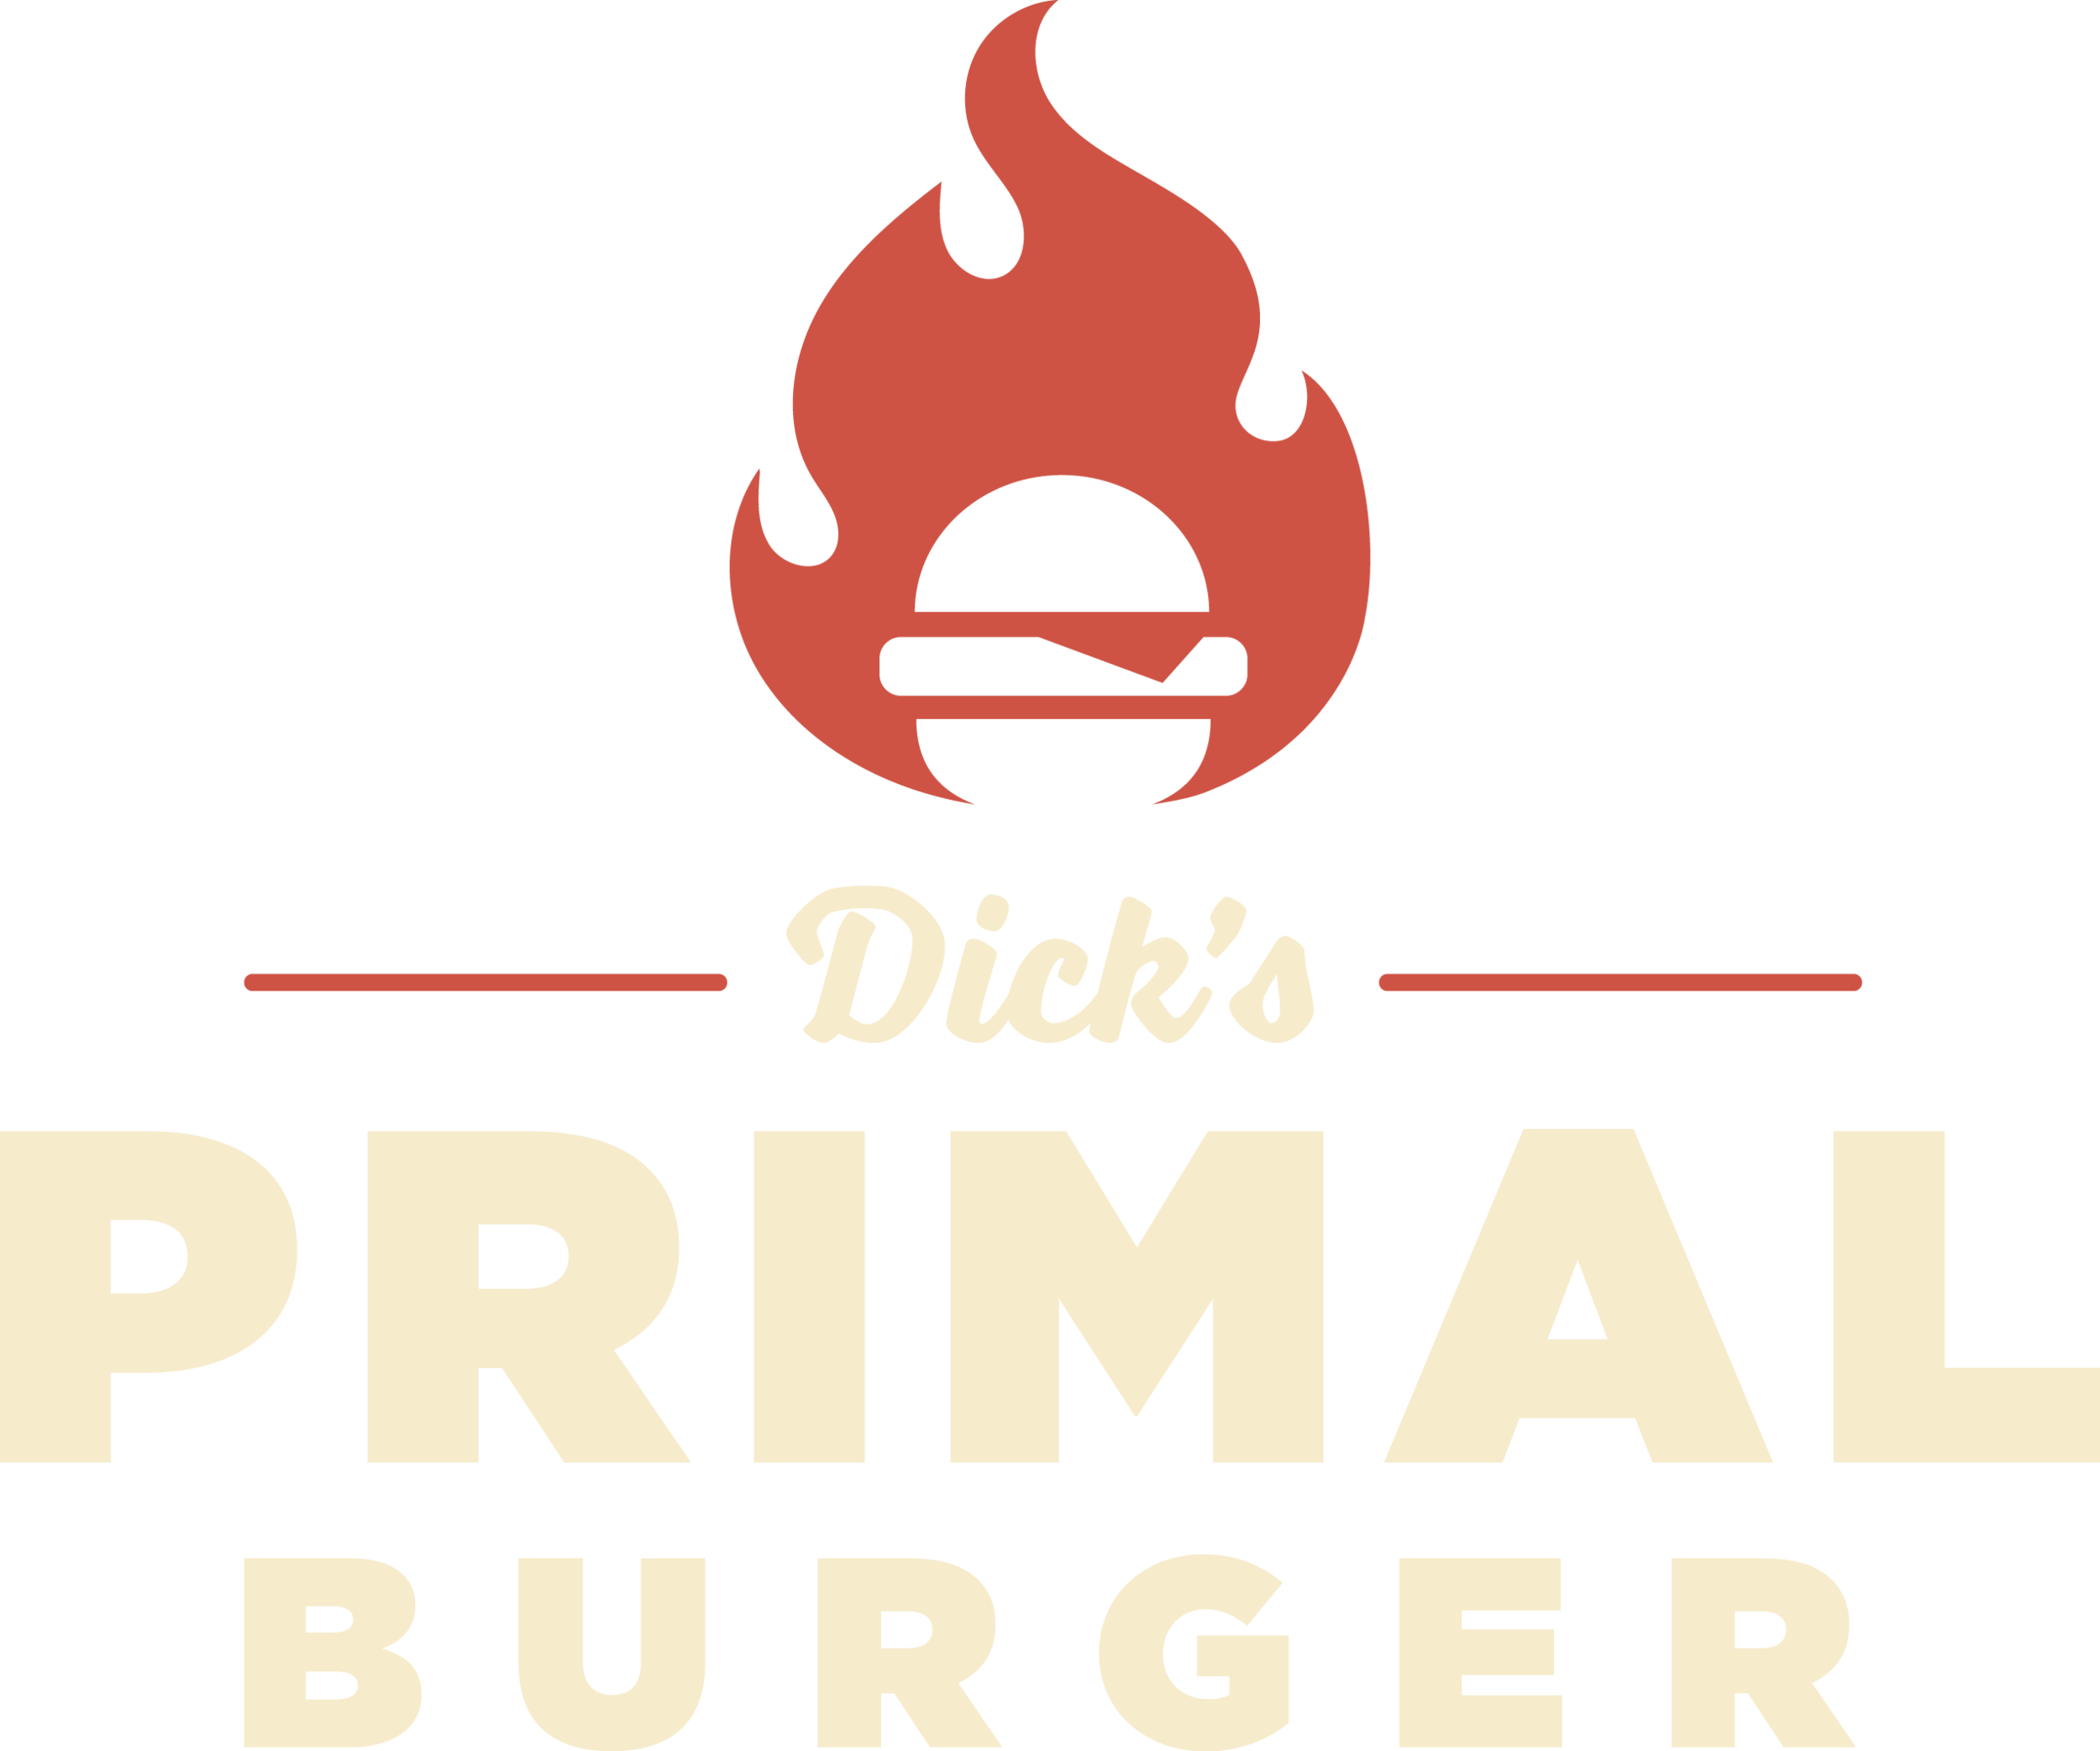 Dick's Primal Burger Logo | Portland Oregon